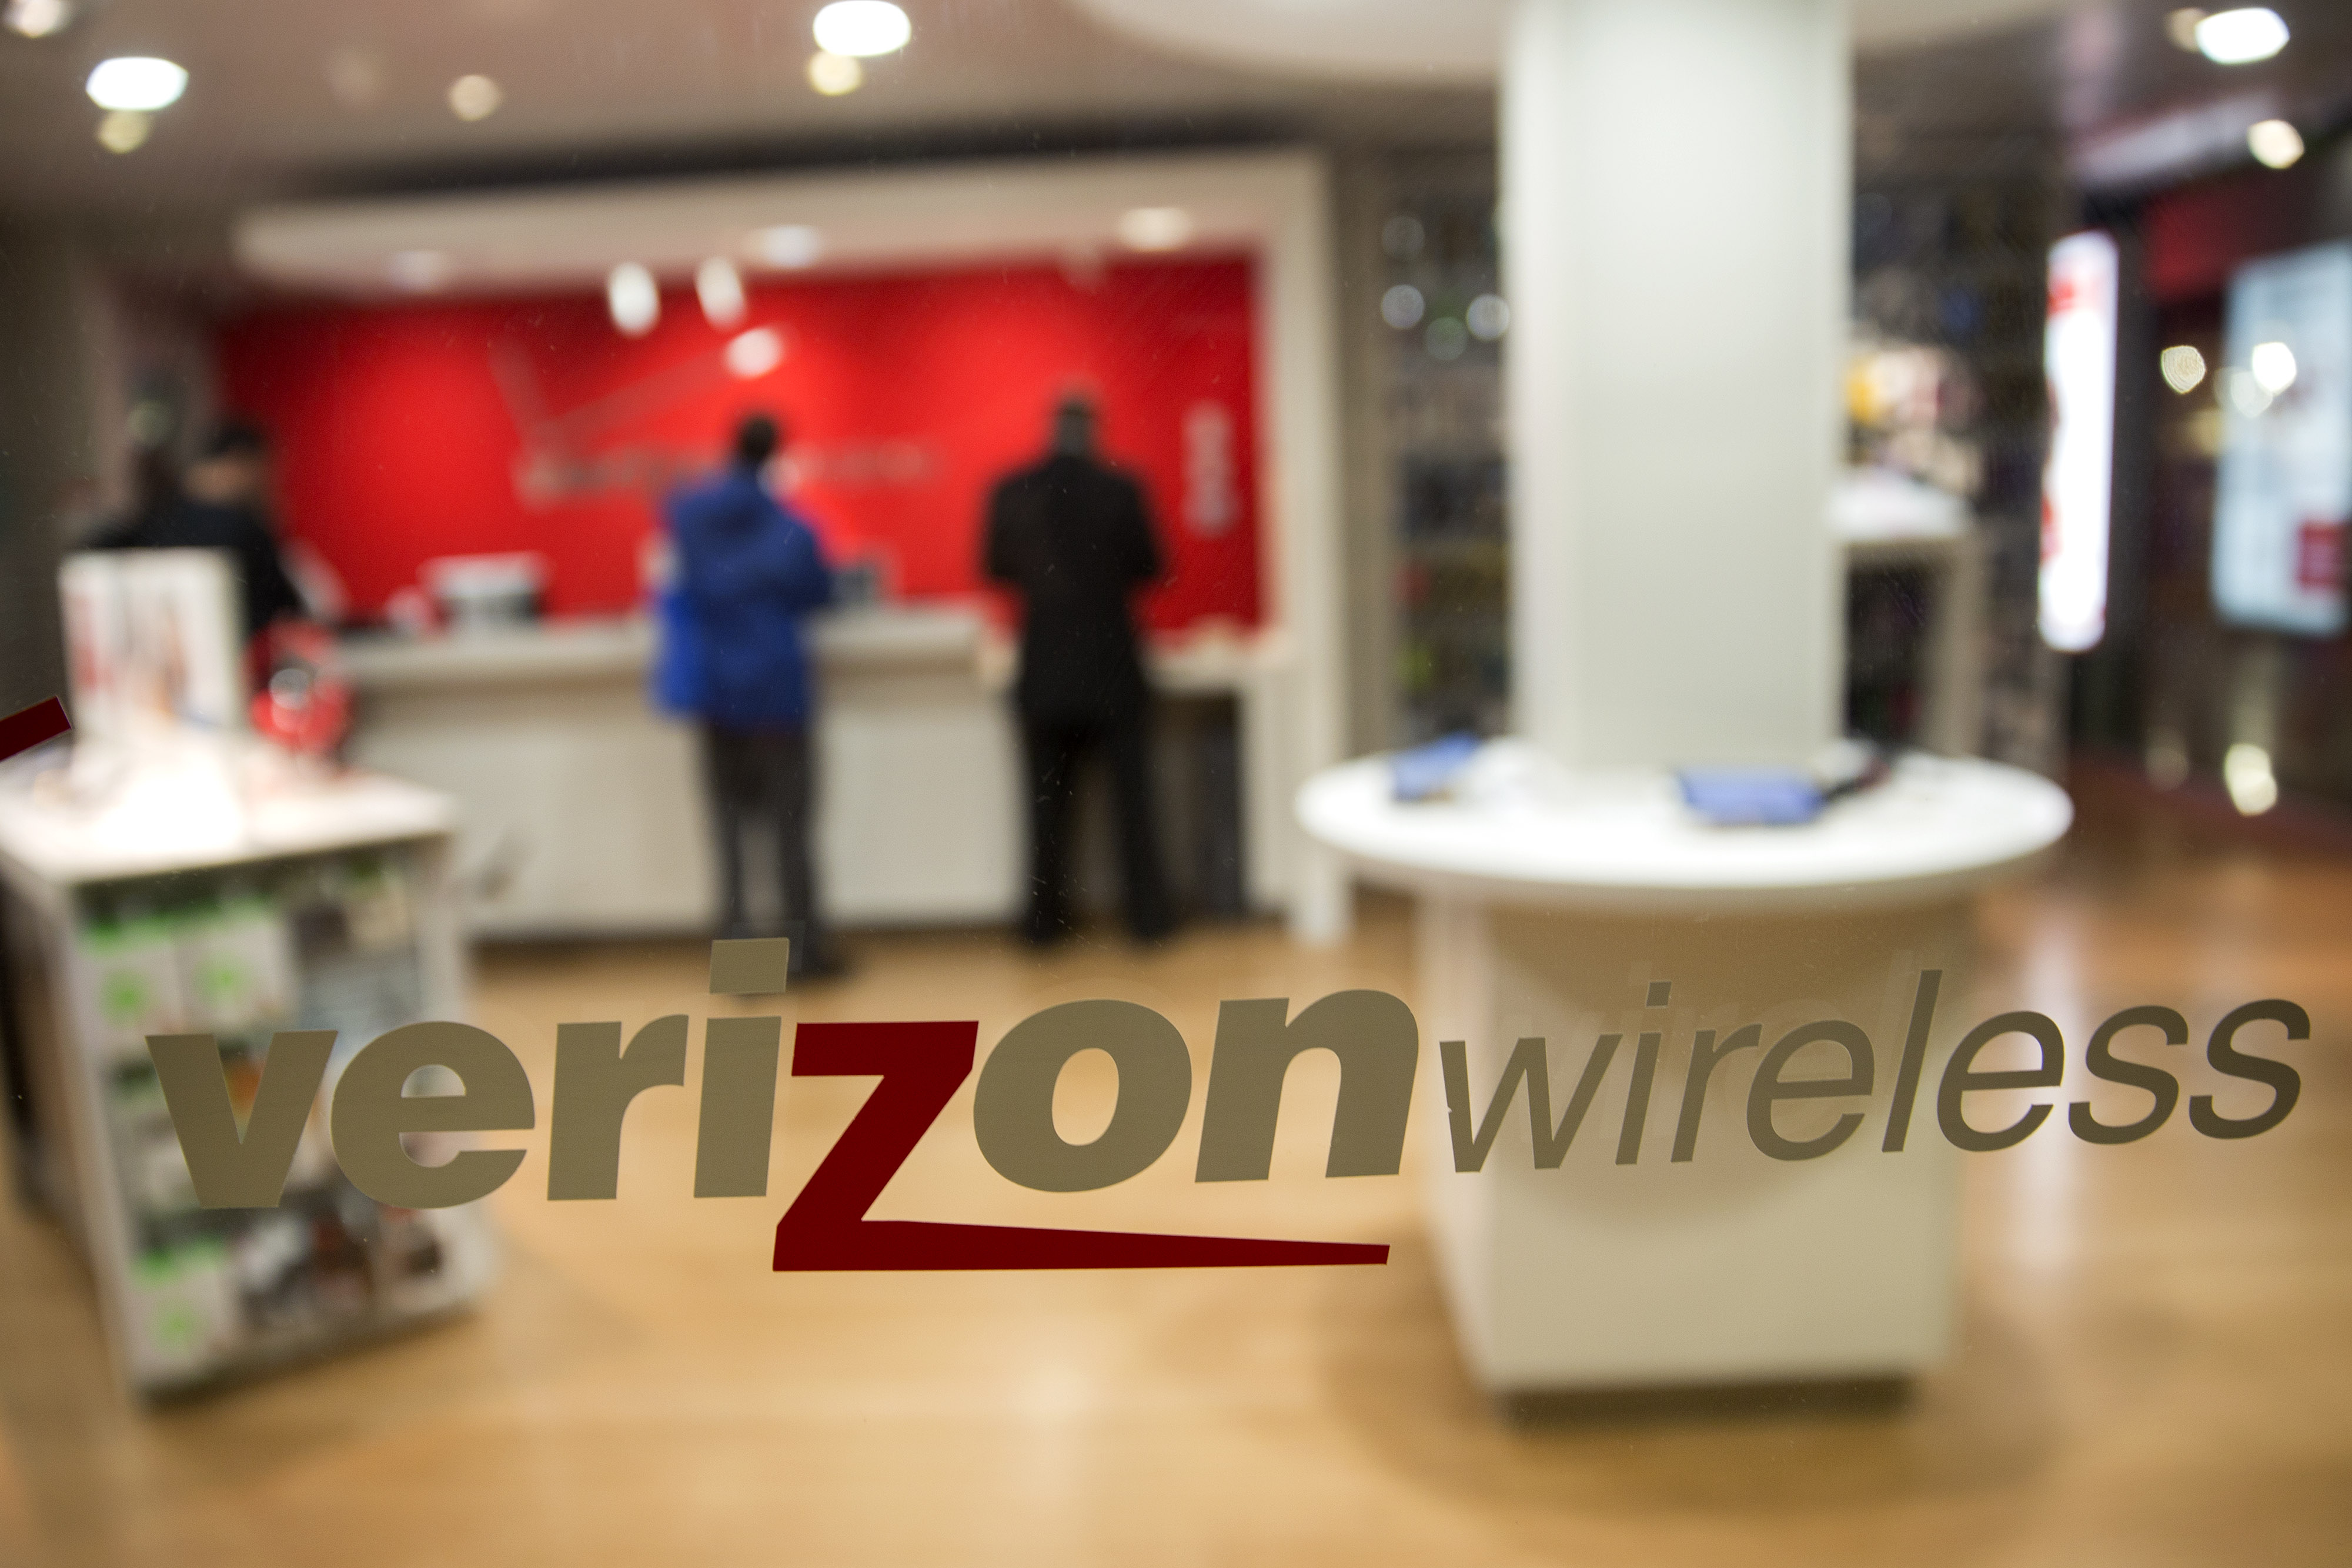 The Verizon Wireless logo is displayed on a window at a retail store in Washington, D.C. on Oct. 23, 2014.